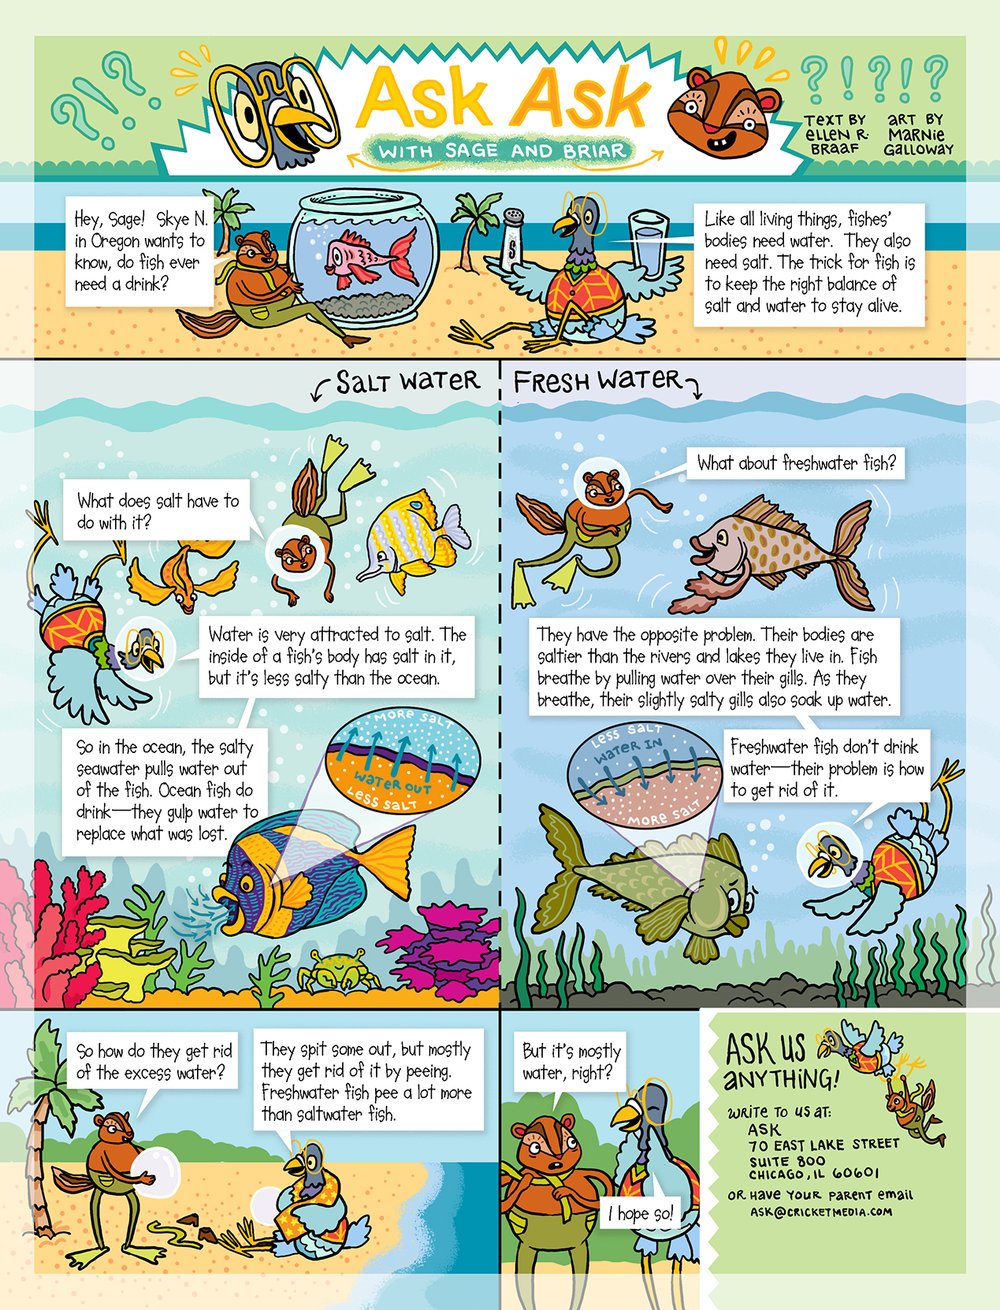 ASK ASK - Every issue of ASK magazine, a science magazine for children ages 6-9, science writer Ellen Braaf and I collaborate on a comic answering readers' science questions.